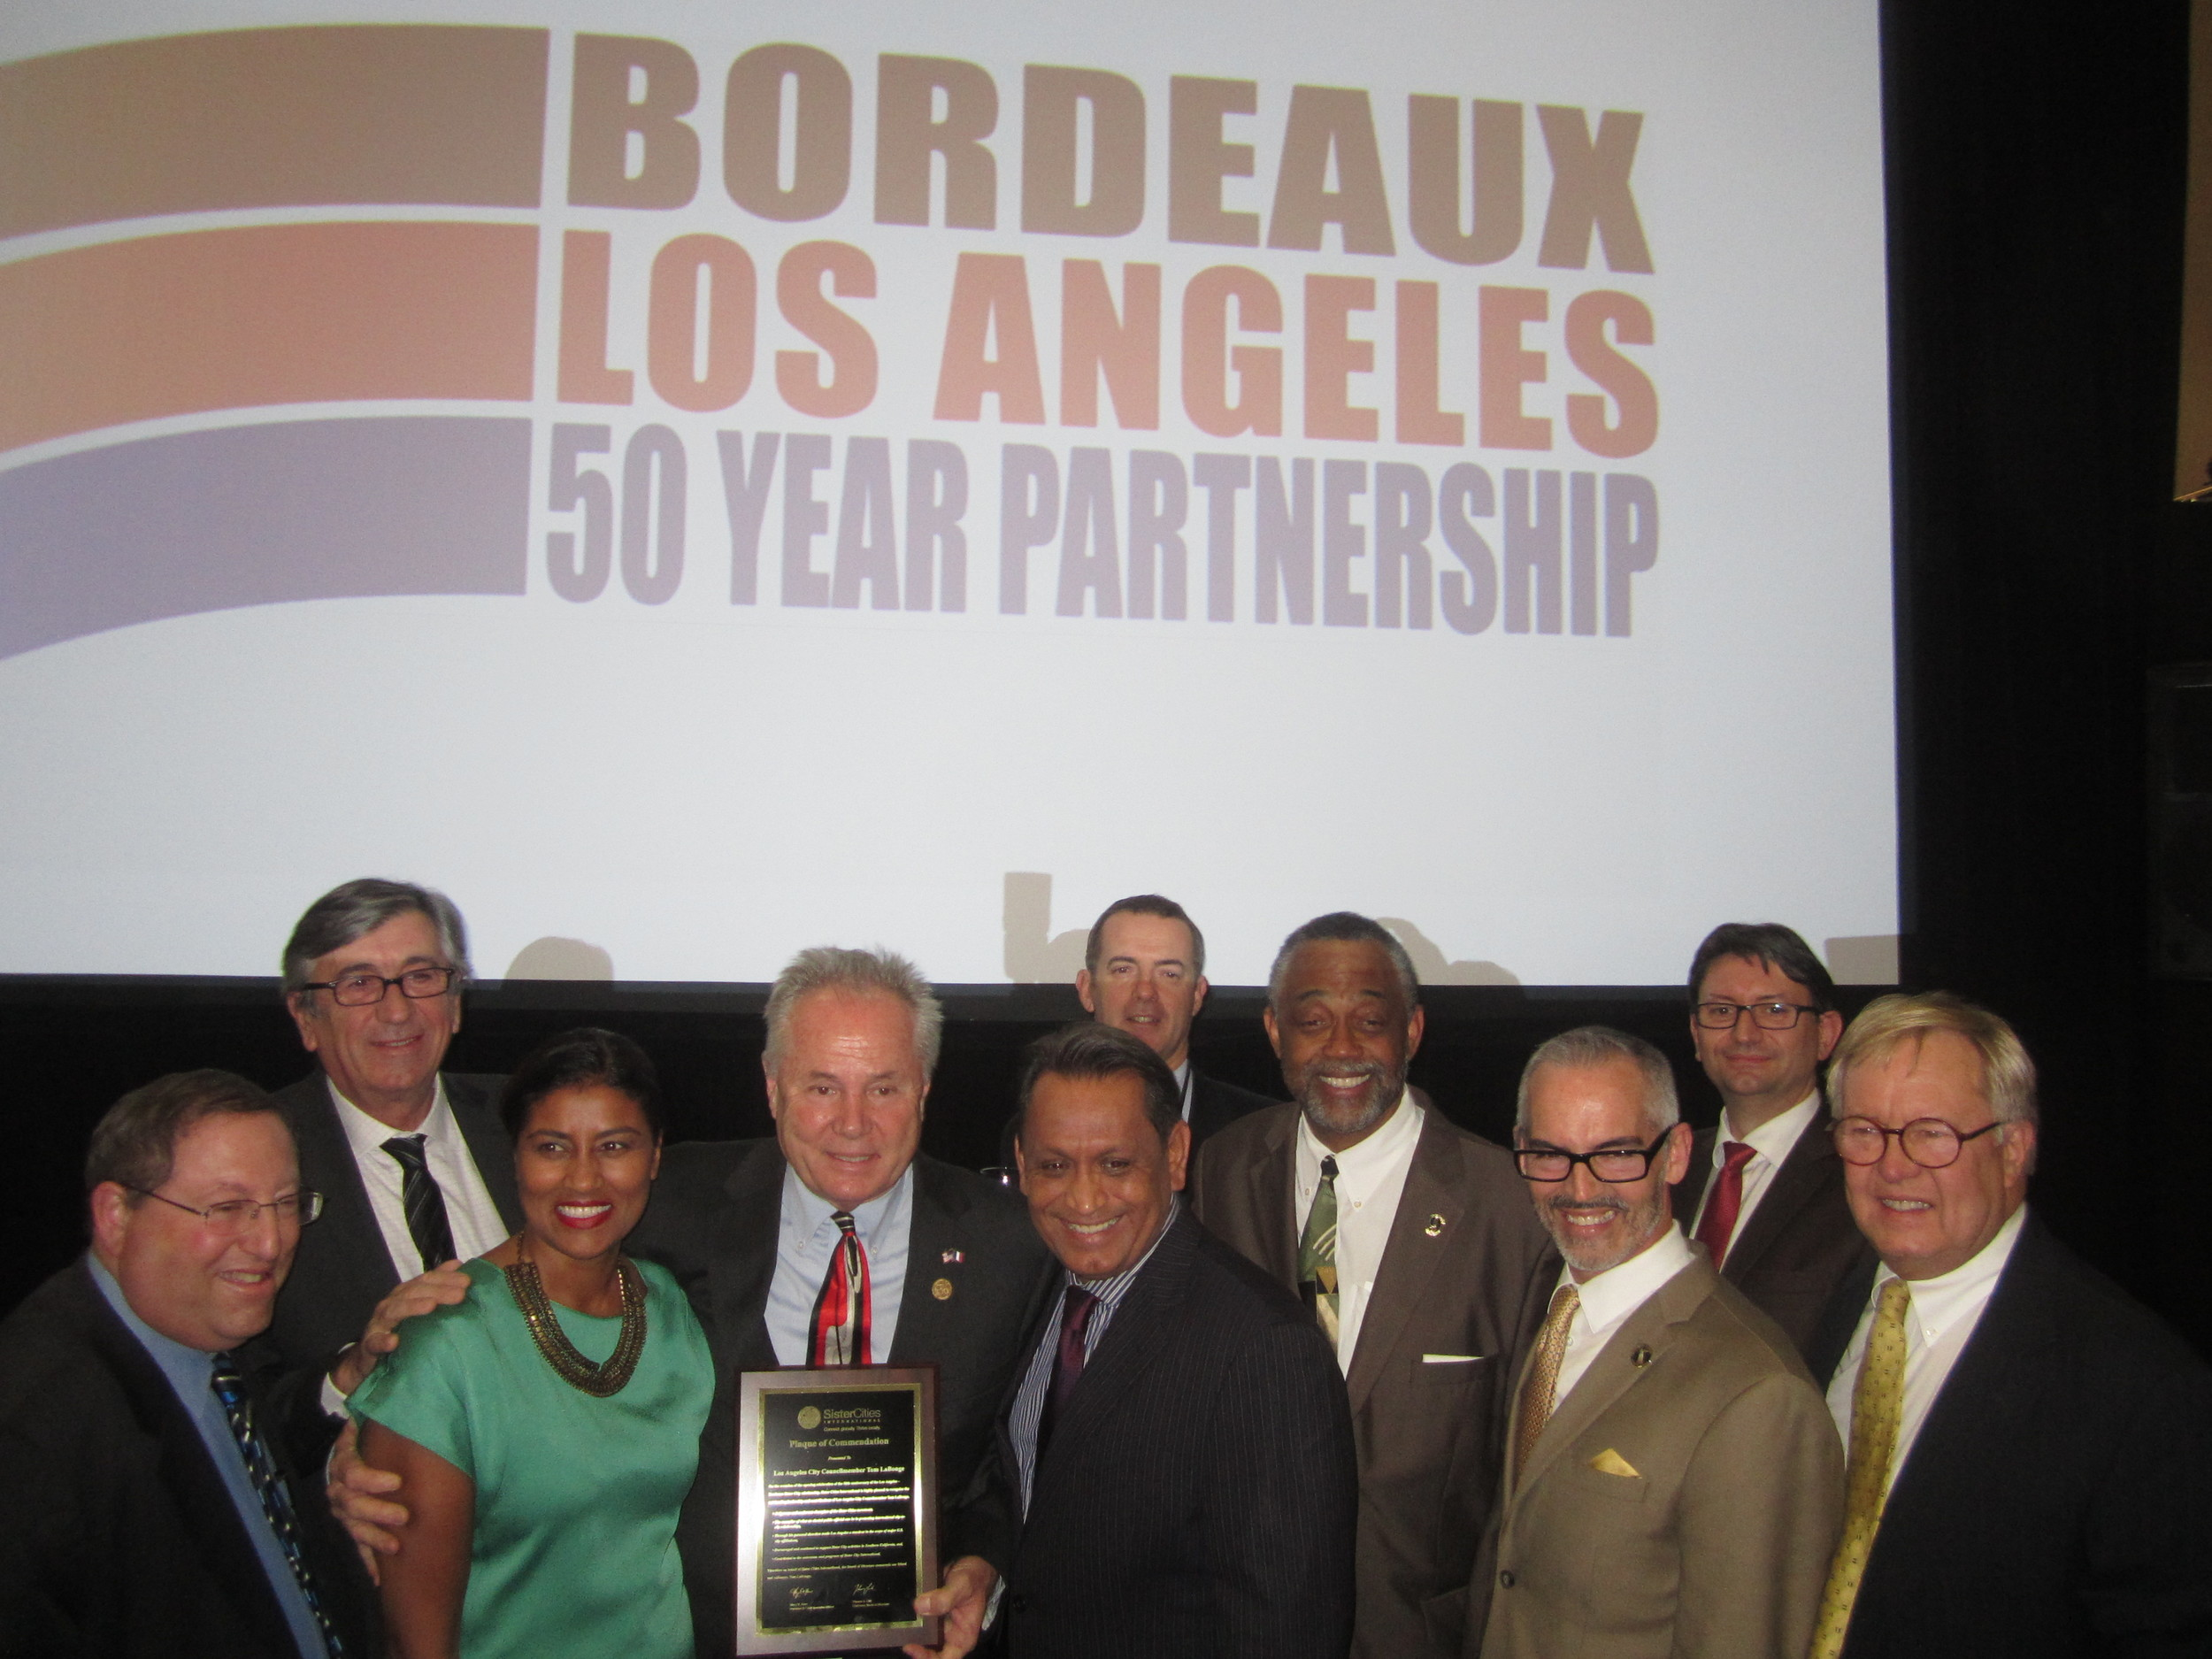 Councilmember Paul Koretz, Council District 5, Stephen Delaux, Deputy Mayor of Bordeaux, Kamilla Blanche, Councilmember Tom LaBonge, Council District 4, Councilmember Gil Cedillo, Council District 1, Councilmember Curren D. Price, Jr., Council District 9, Councilmember Mitch O'Farrell, Council District 13, Axel Cruau, Consul General of France, Bill Boerum, Chair Emeritus of Sister Cities International